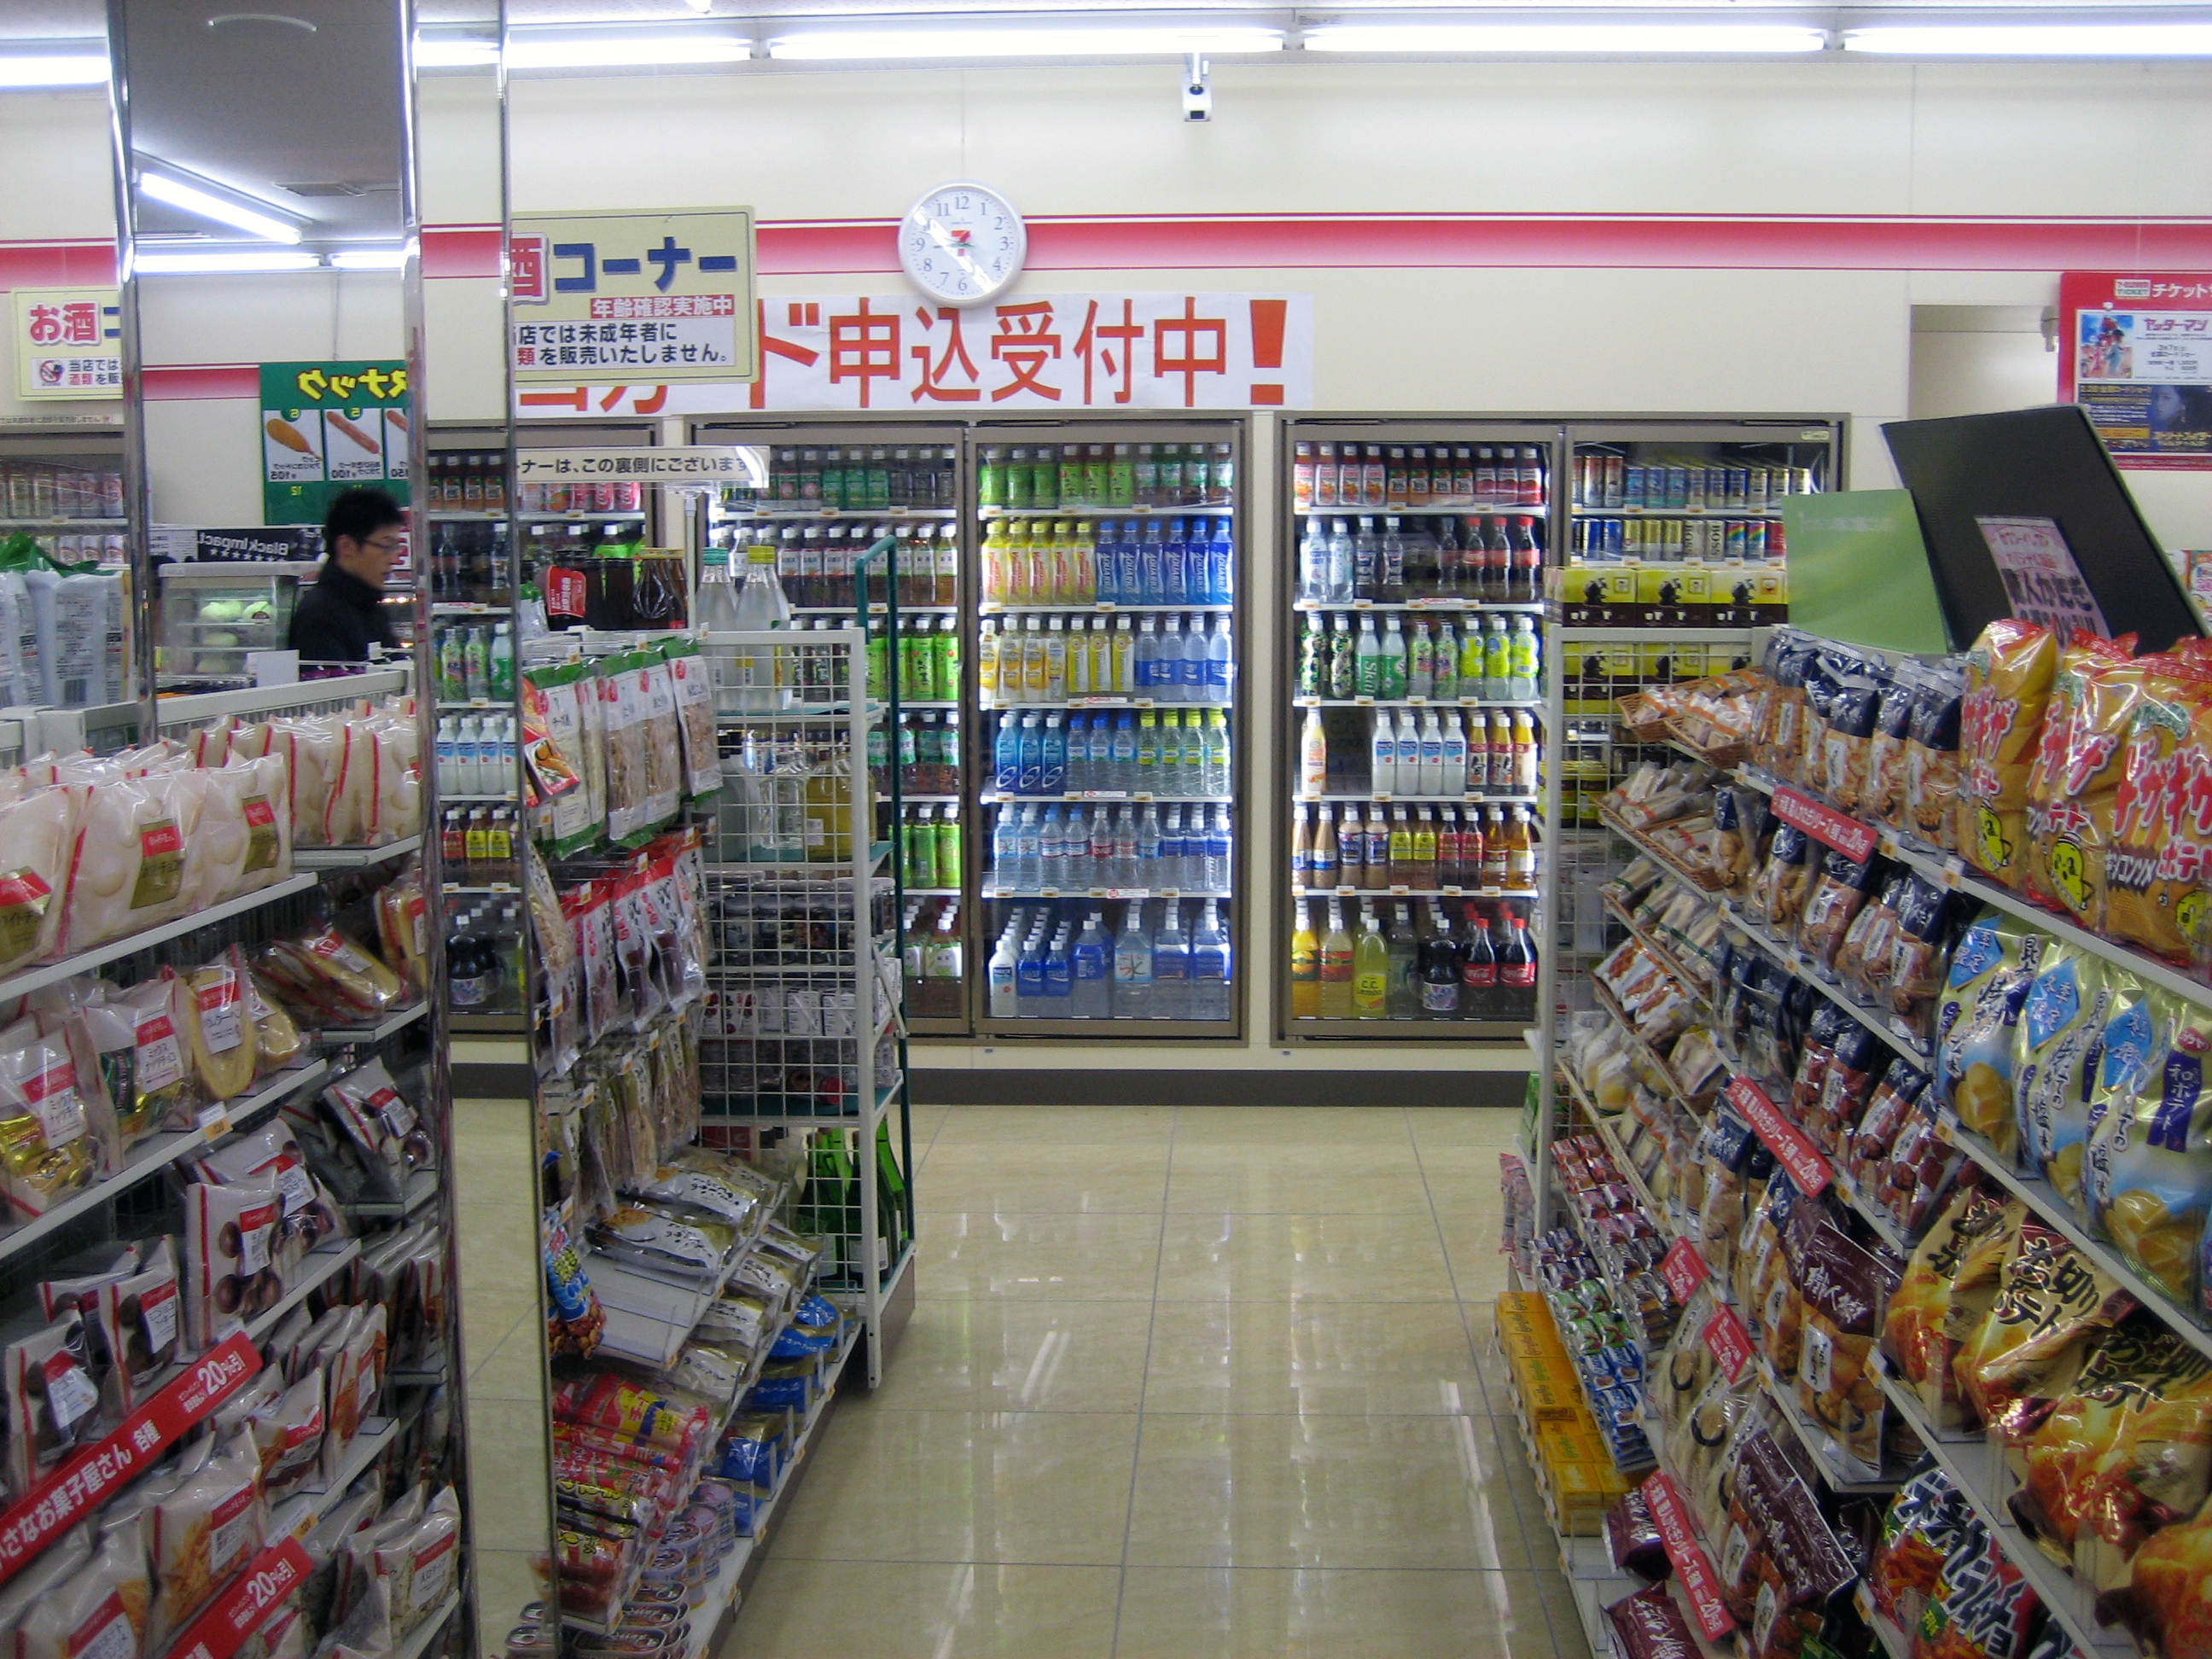 File:Interior of Seven-Eleven.jpg - Wikimedia Commons : Seven Eleven ...